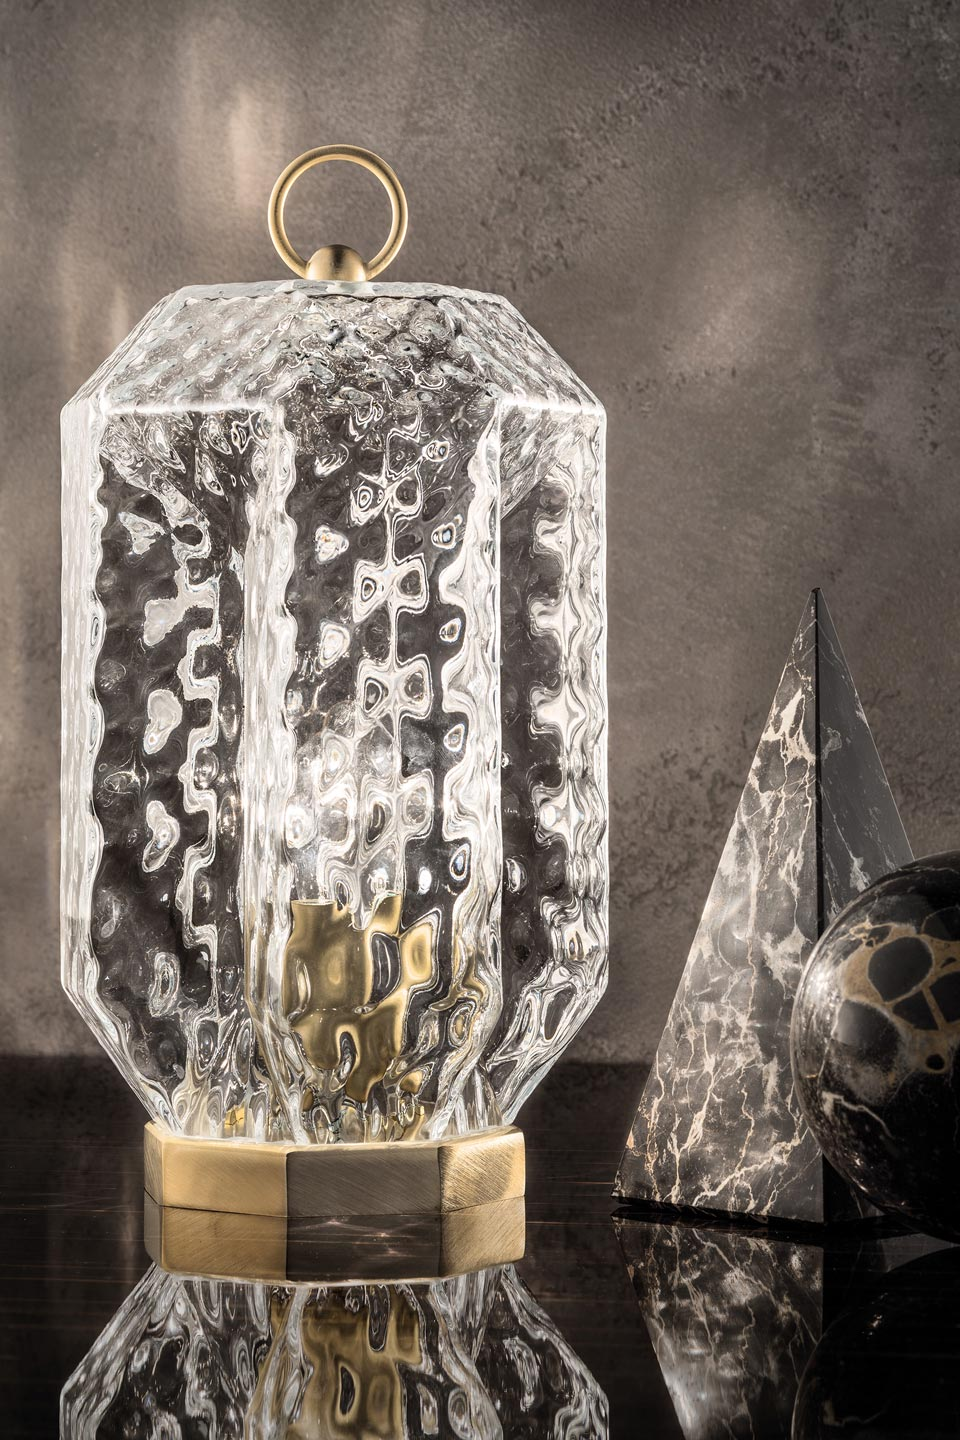 Blown glass lantern lamp. Masiero.